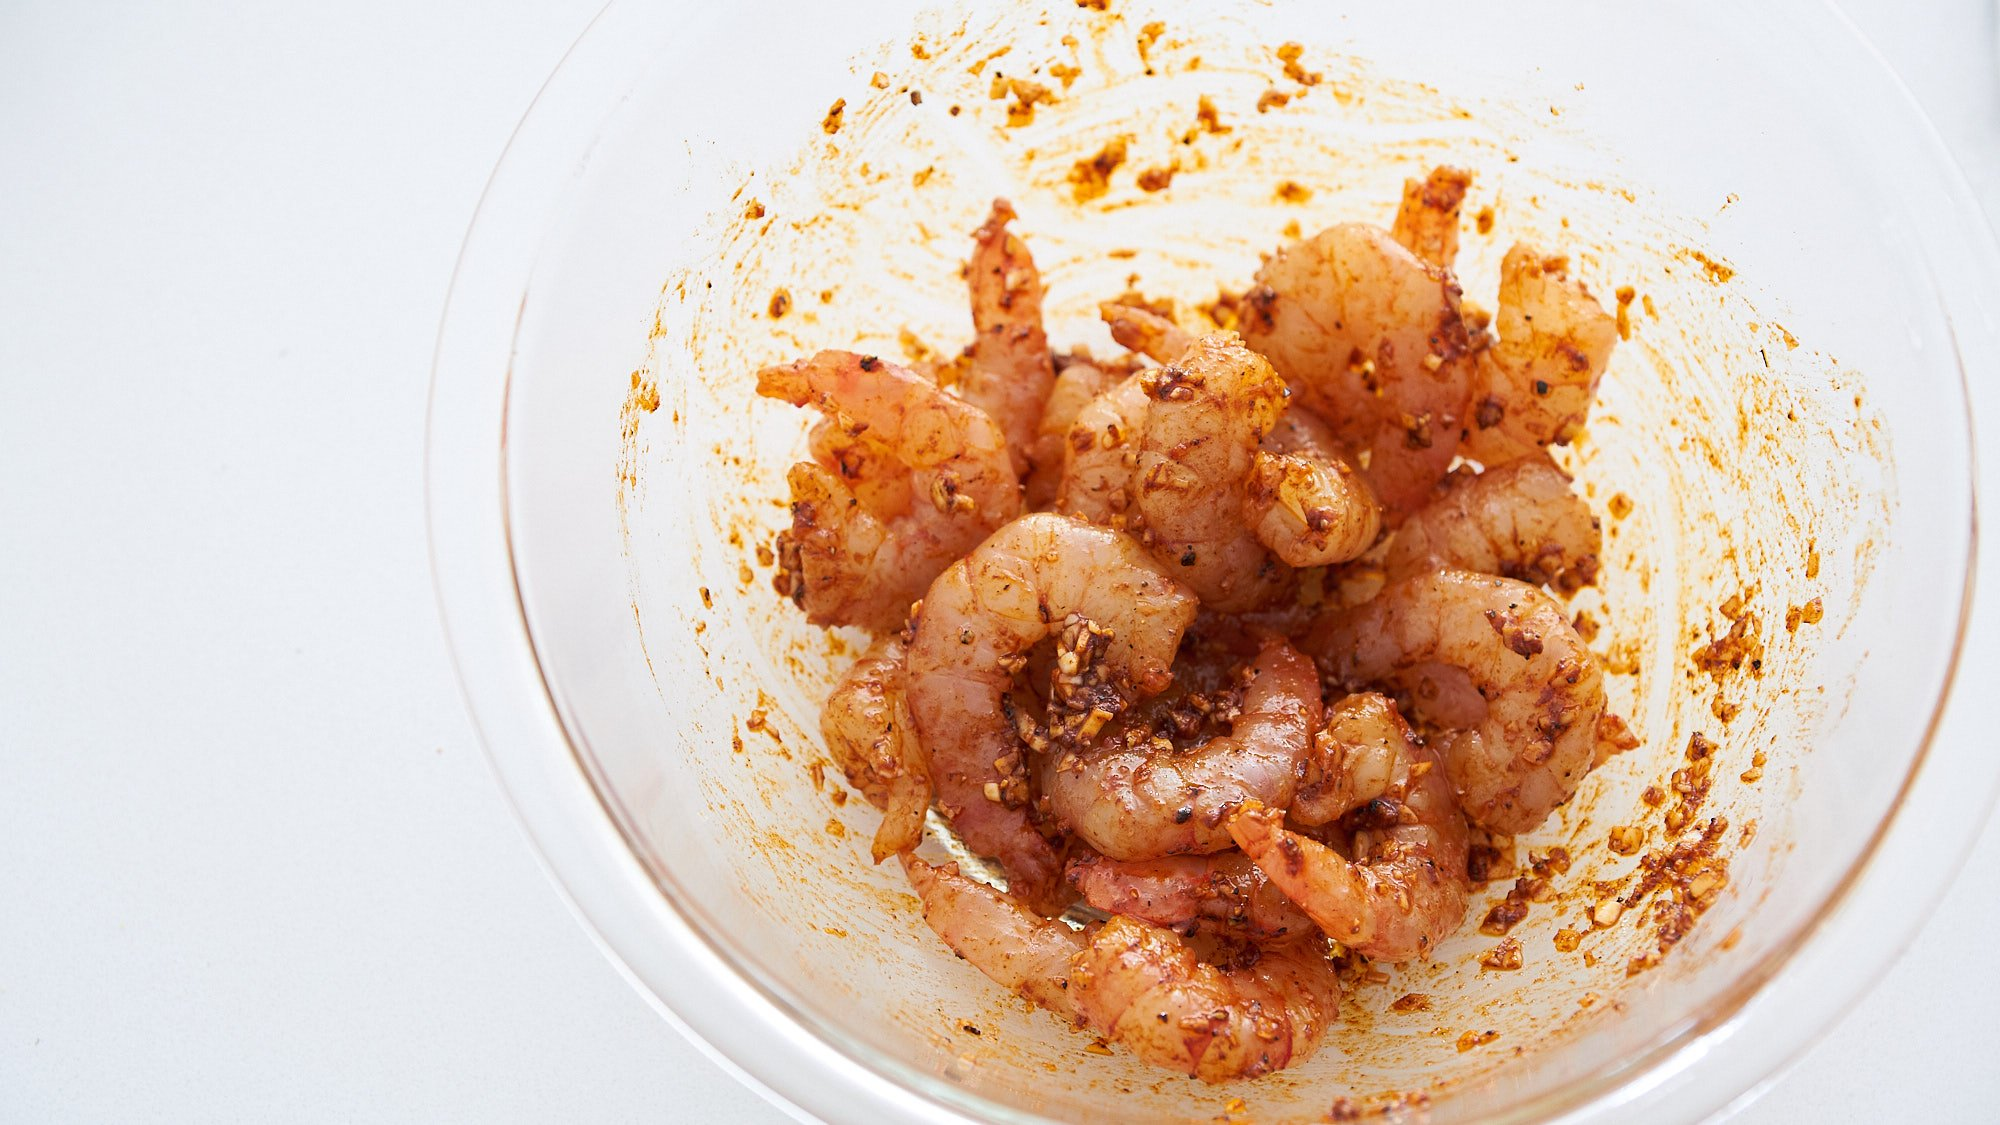 Marinate your shrimp with garlic and paprika for the best shrimp and grits.